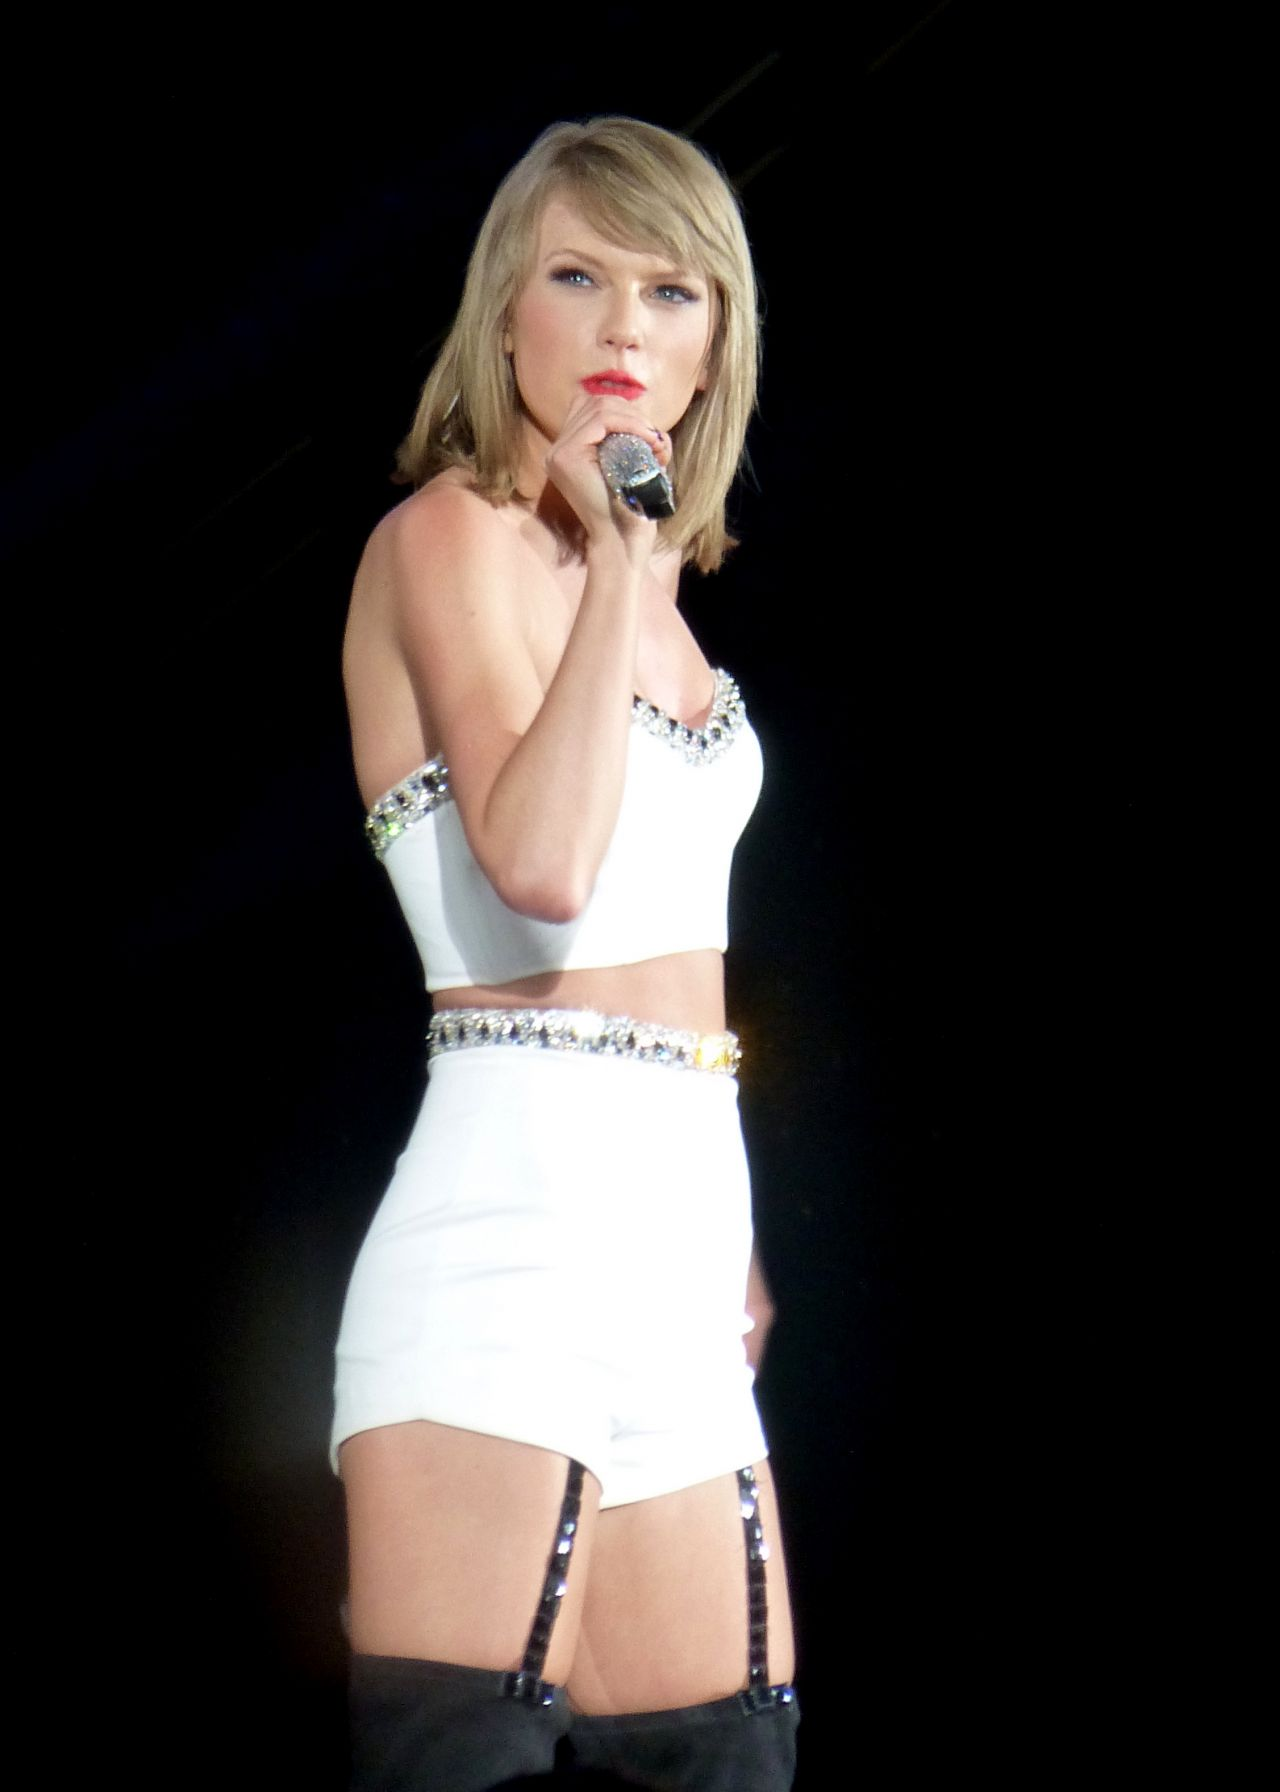 how tall is taylor swiift